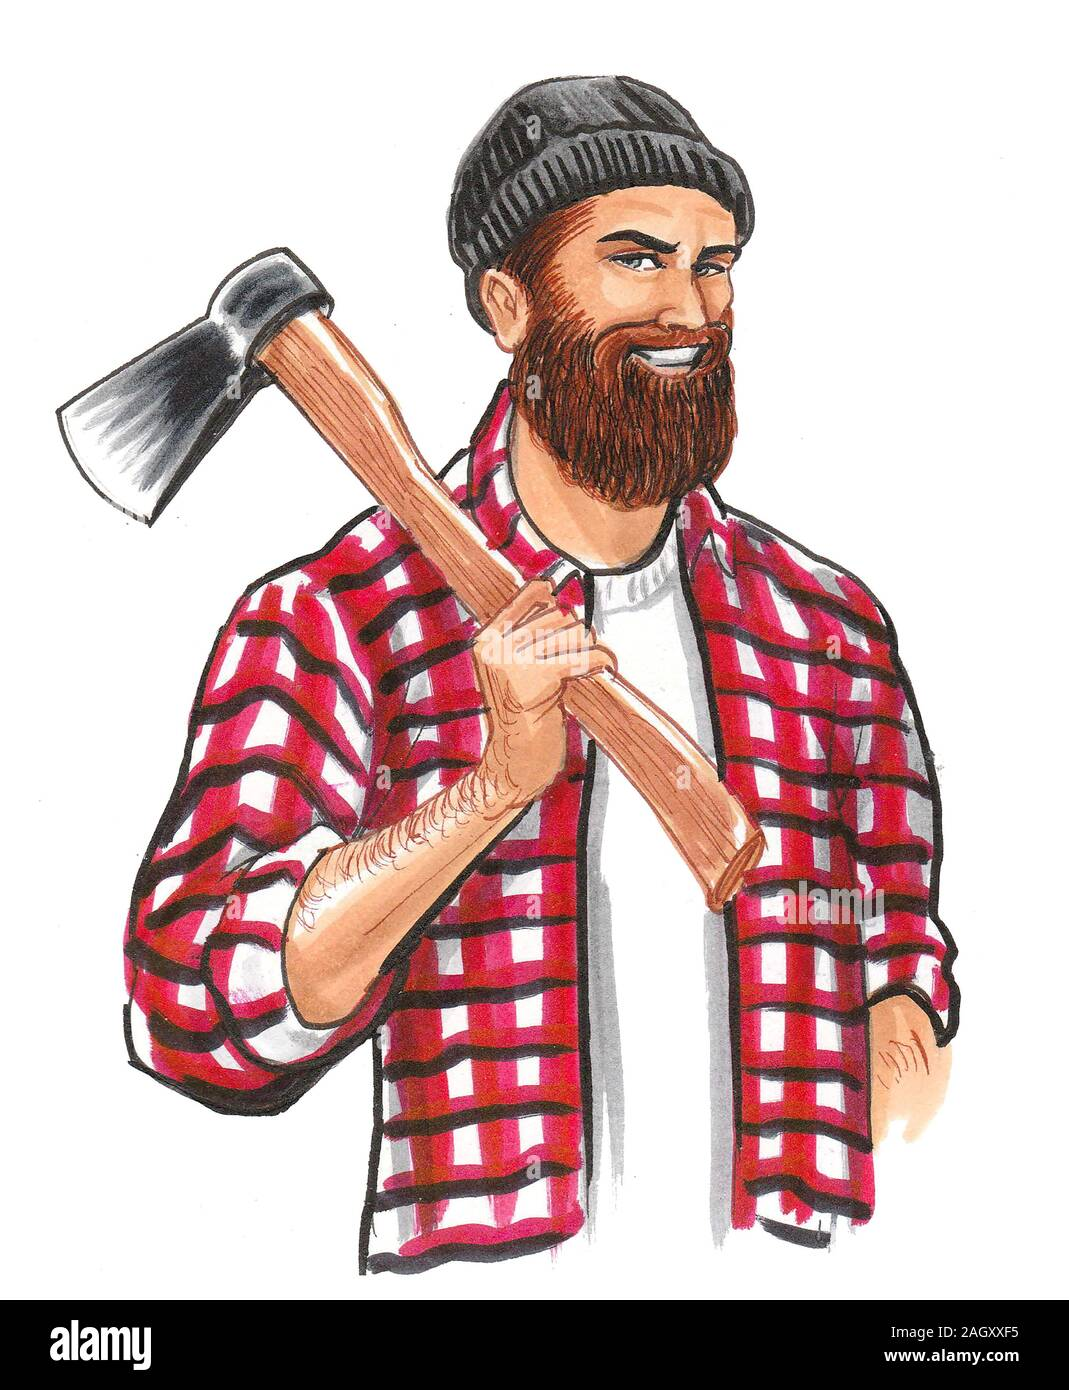 Lumberjack with ax. Ink and watercolor drawing Stock Photo